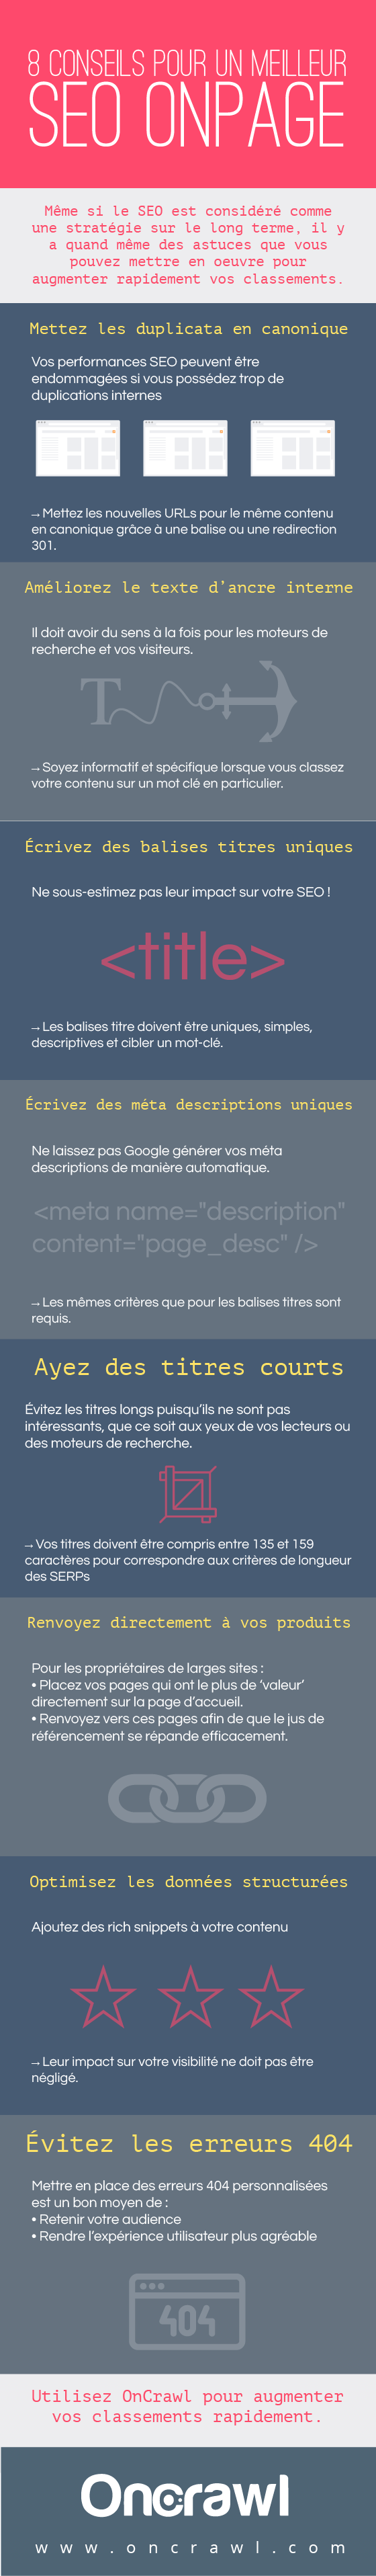 infographie-8-actuces-seo-onpage